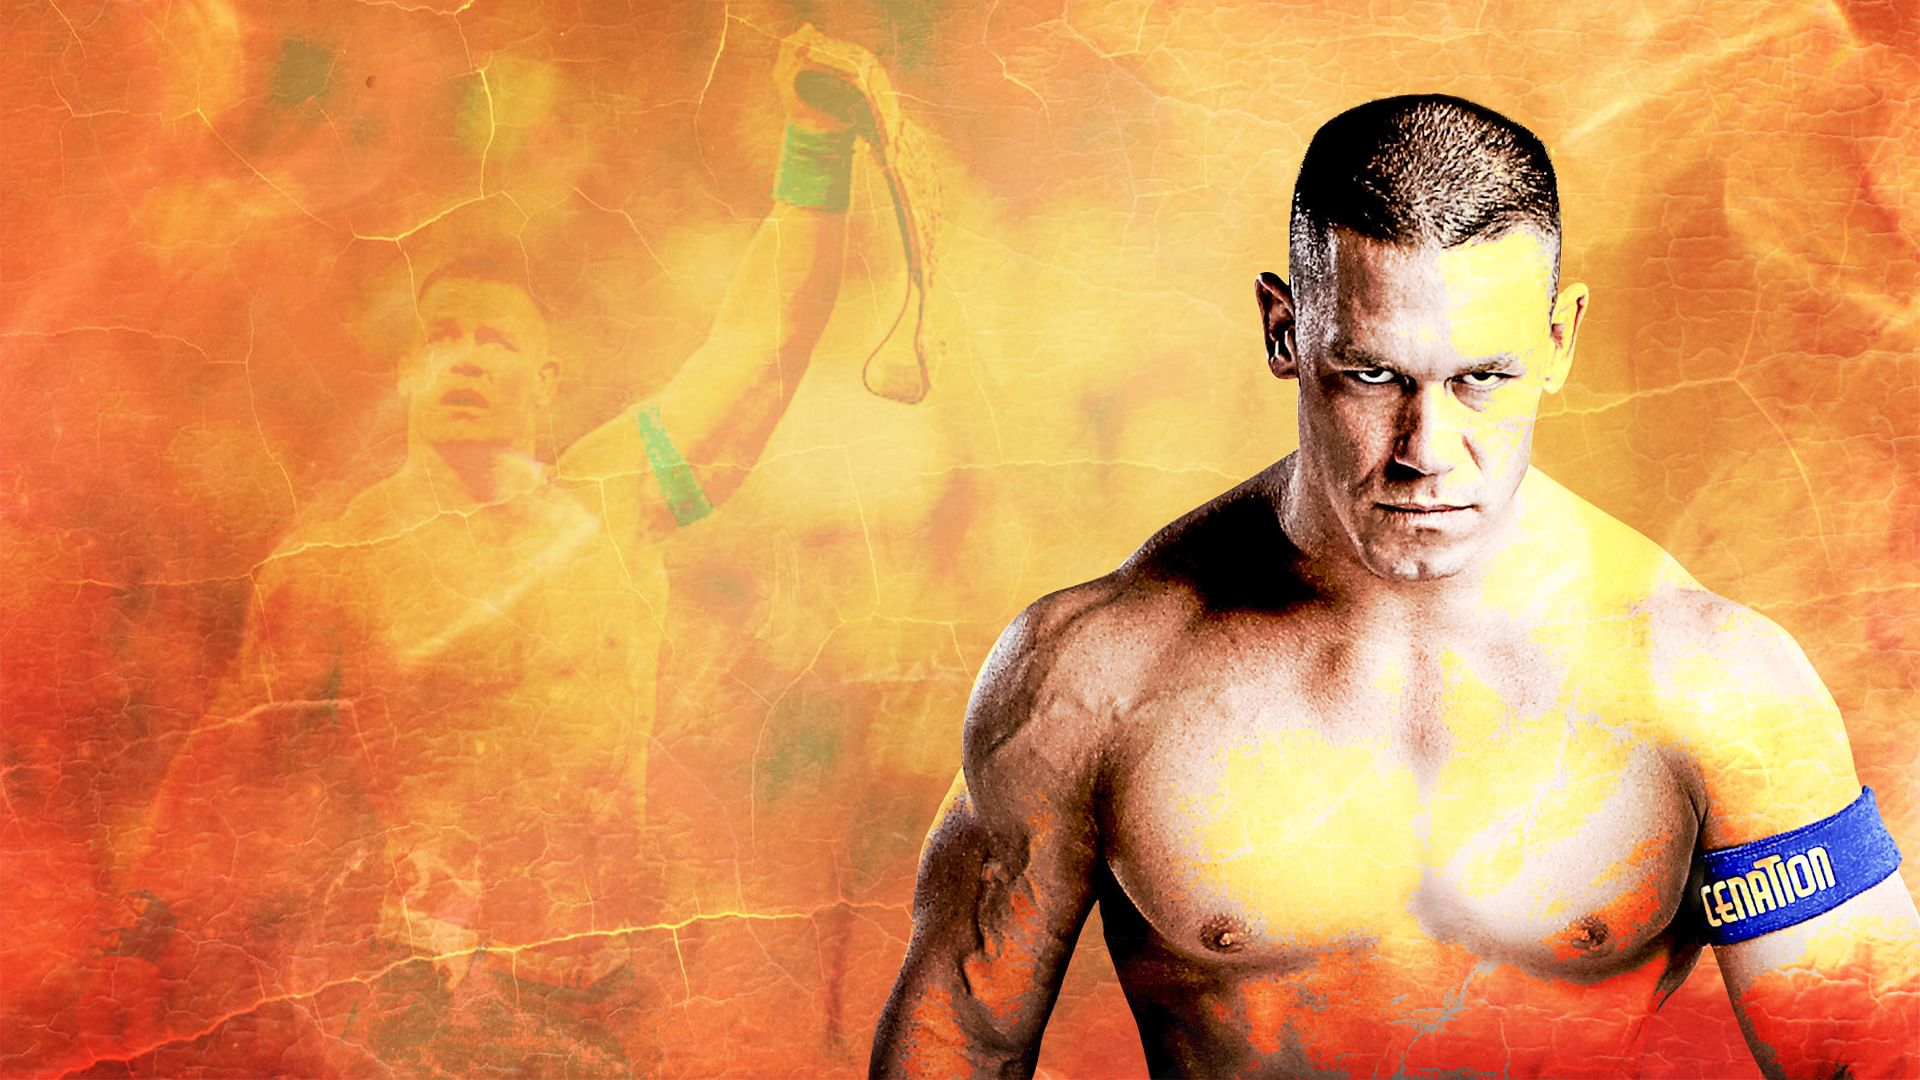 wwe wallpaper 1280x1024 jhone chena - photo #4